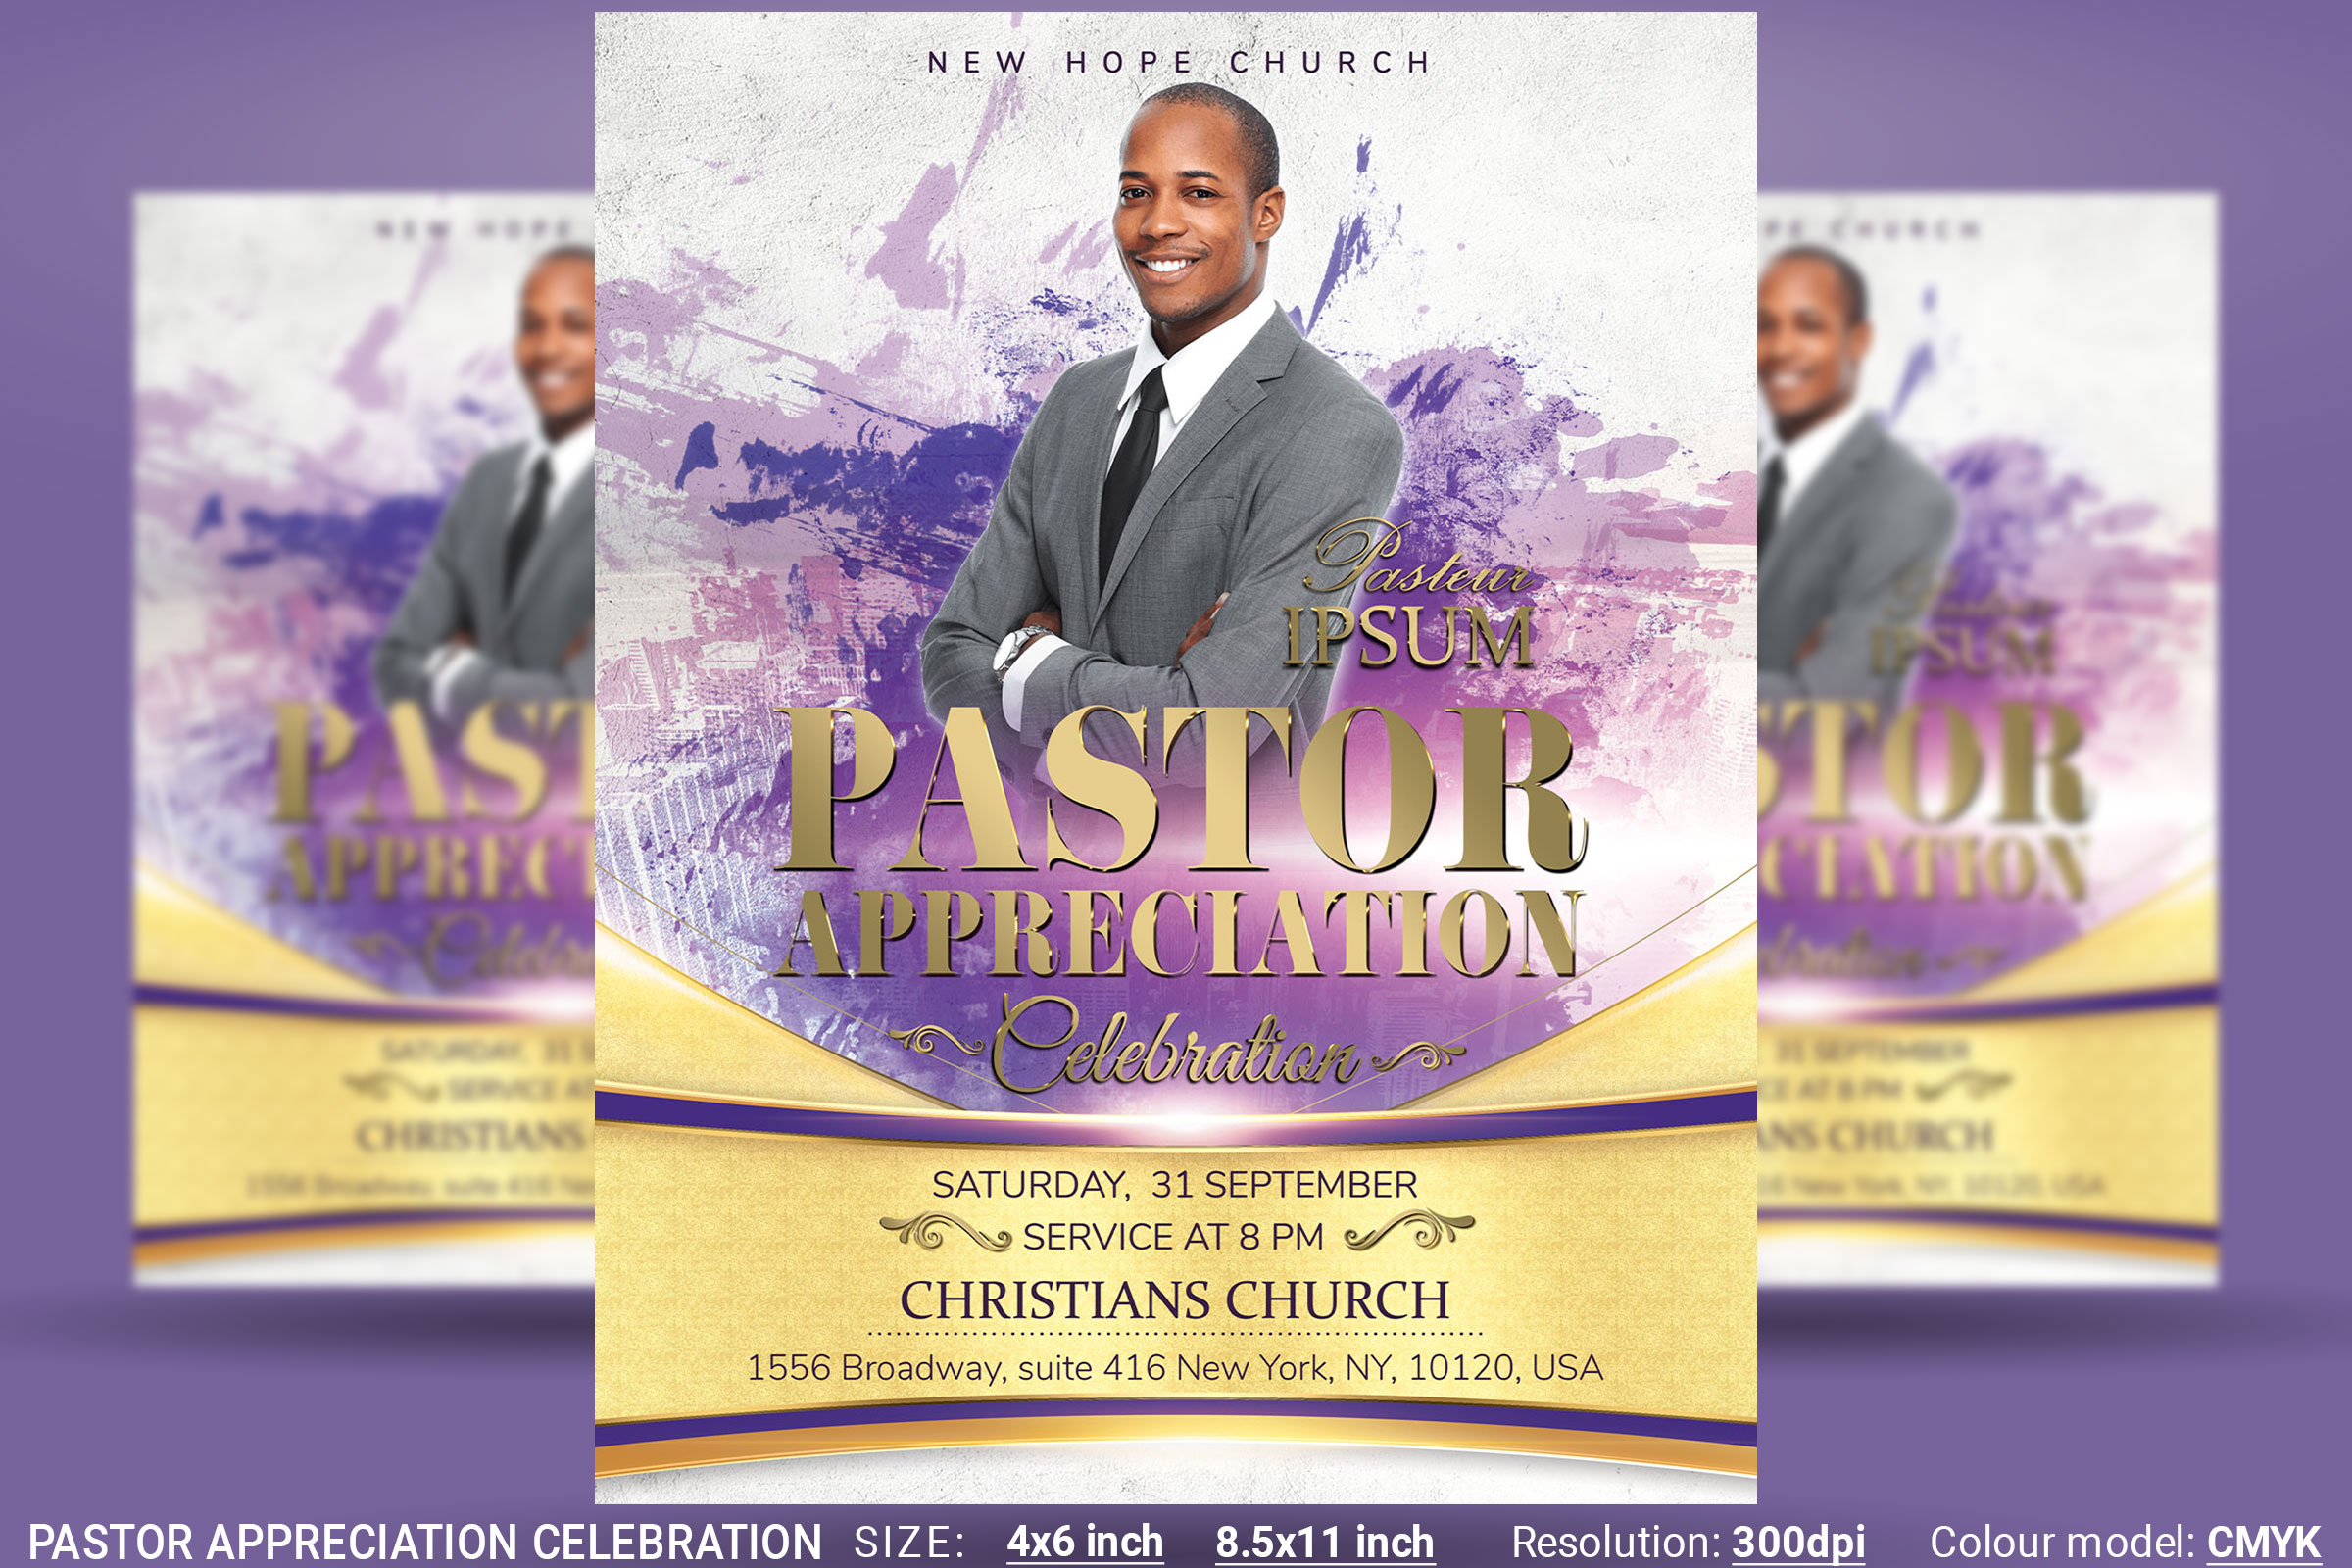 Pastor Appreciation Celebration Church Flyer Example Image 1